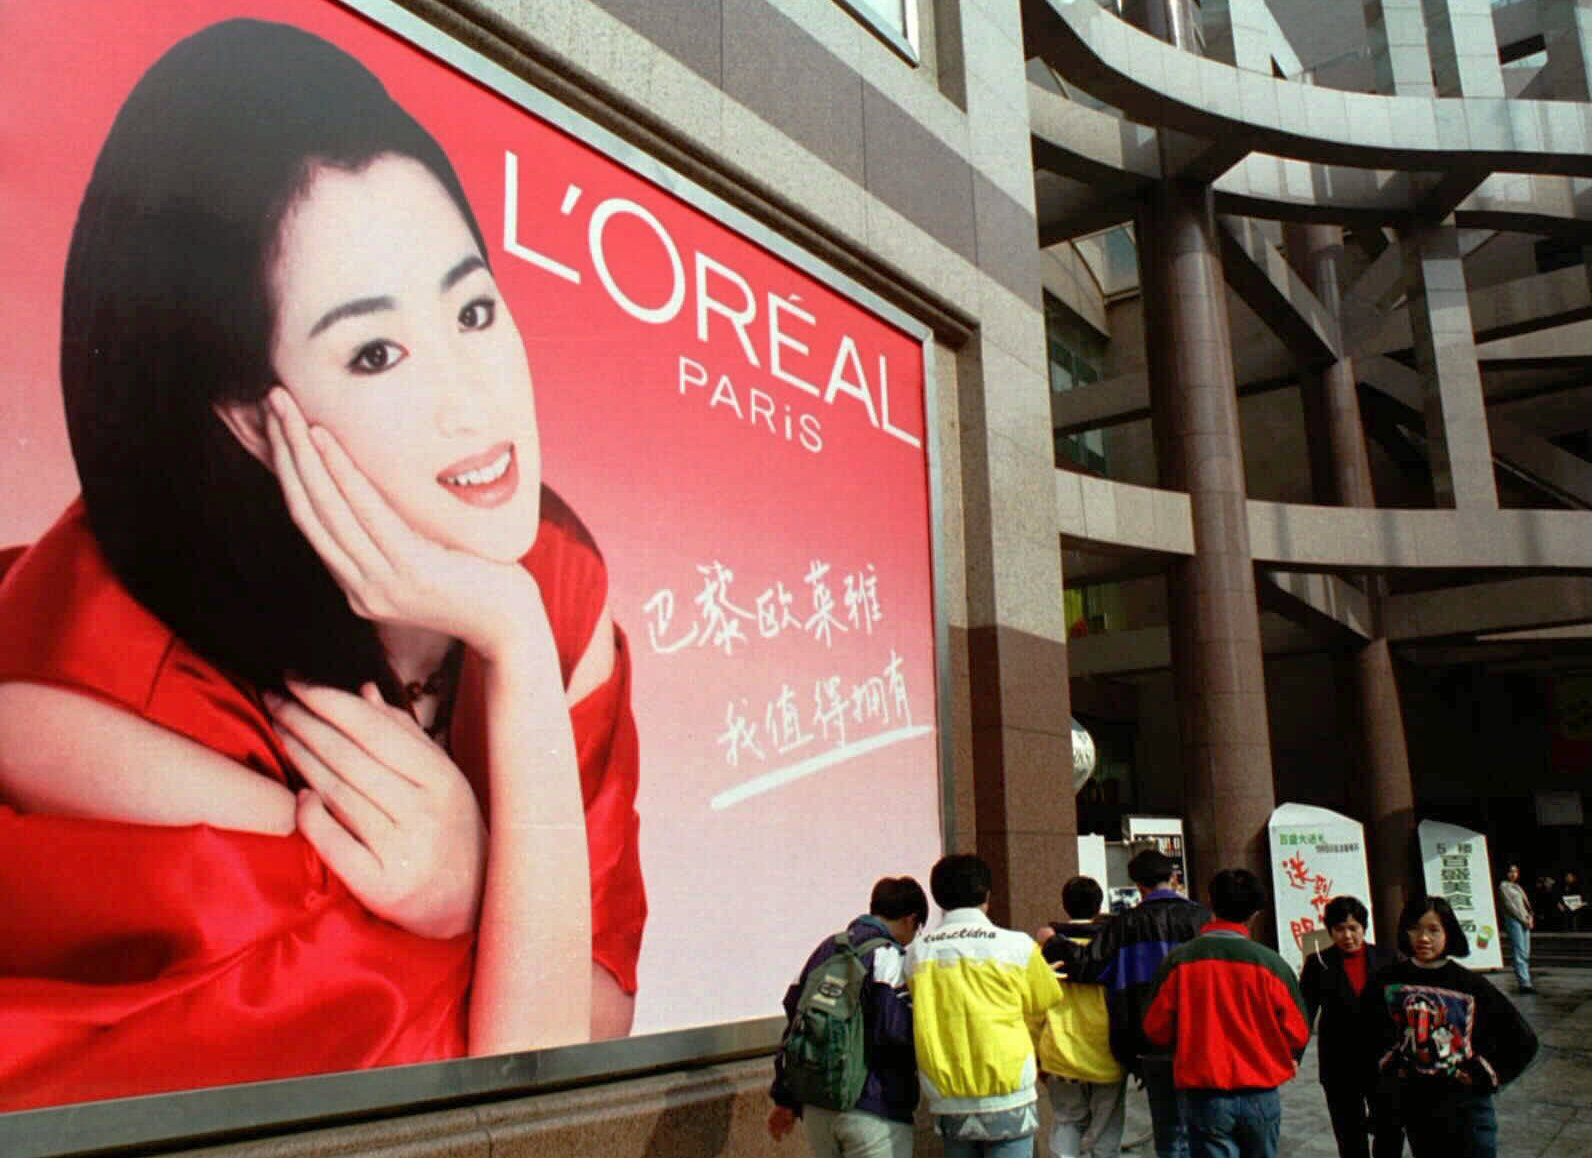 People walk past a giant billboard with a picture of popular Chinese actress Gong Li, advertizing French cosmetics, at the Parkson Shopping Center in Shanghai Sunday, Nov. 23, 1997. (AP Photo/Xinhua, Hu Haixing)